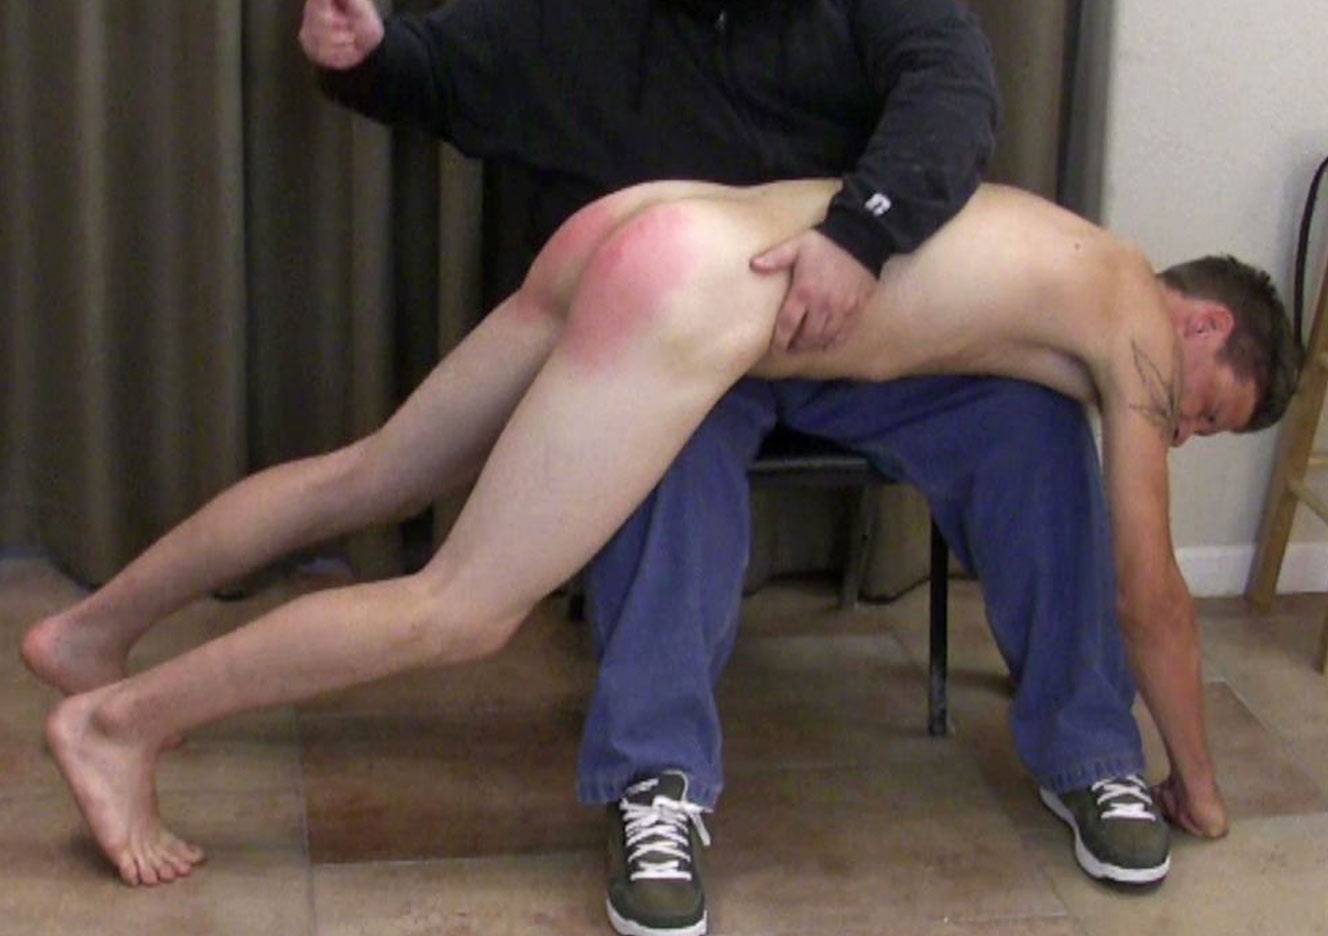 content/150711102-erics-first-spanking-part-2/0.jpg